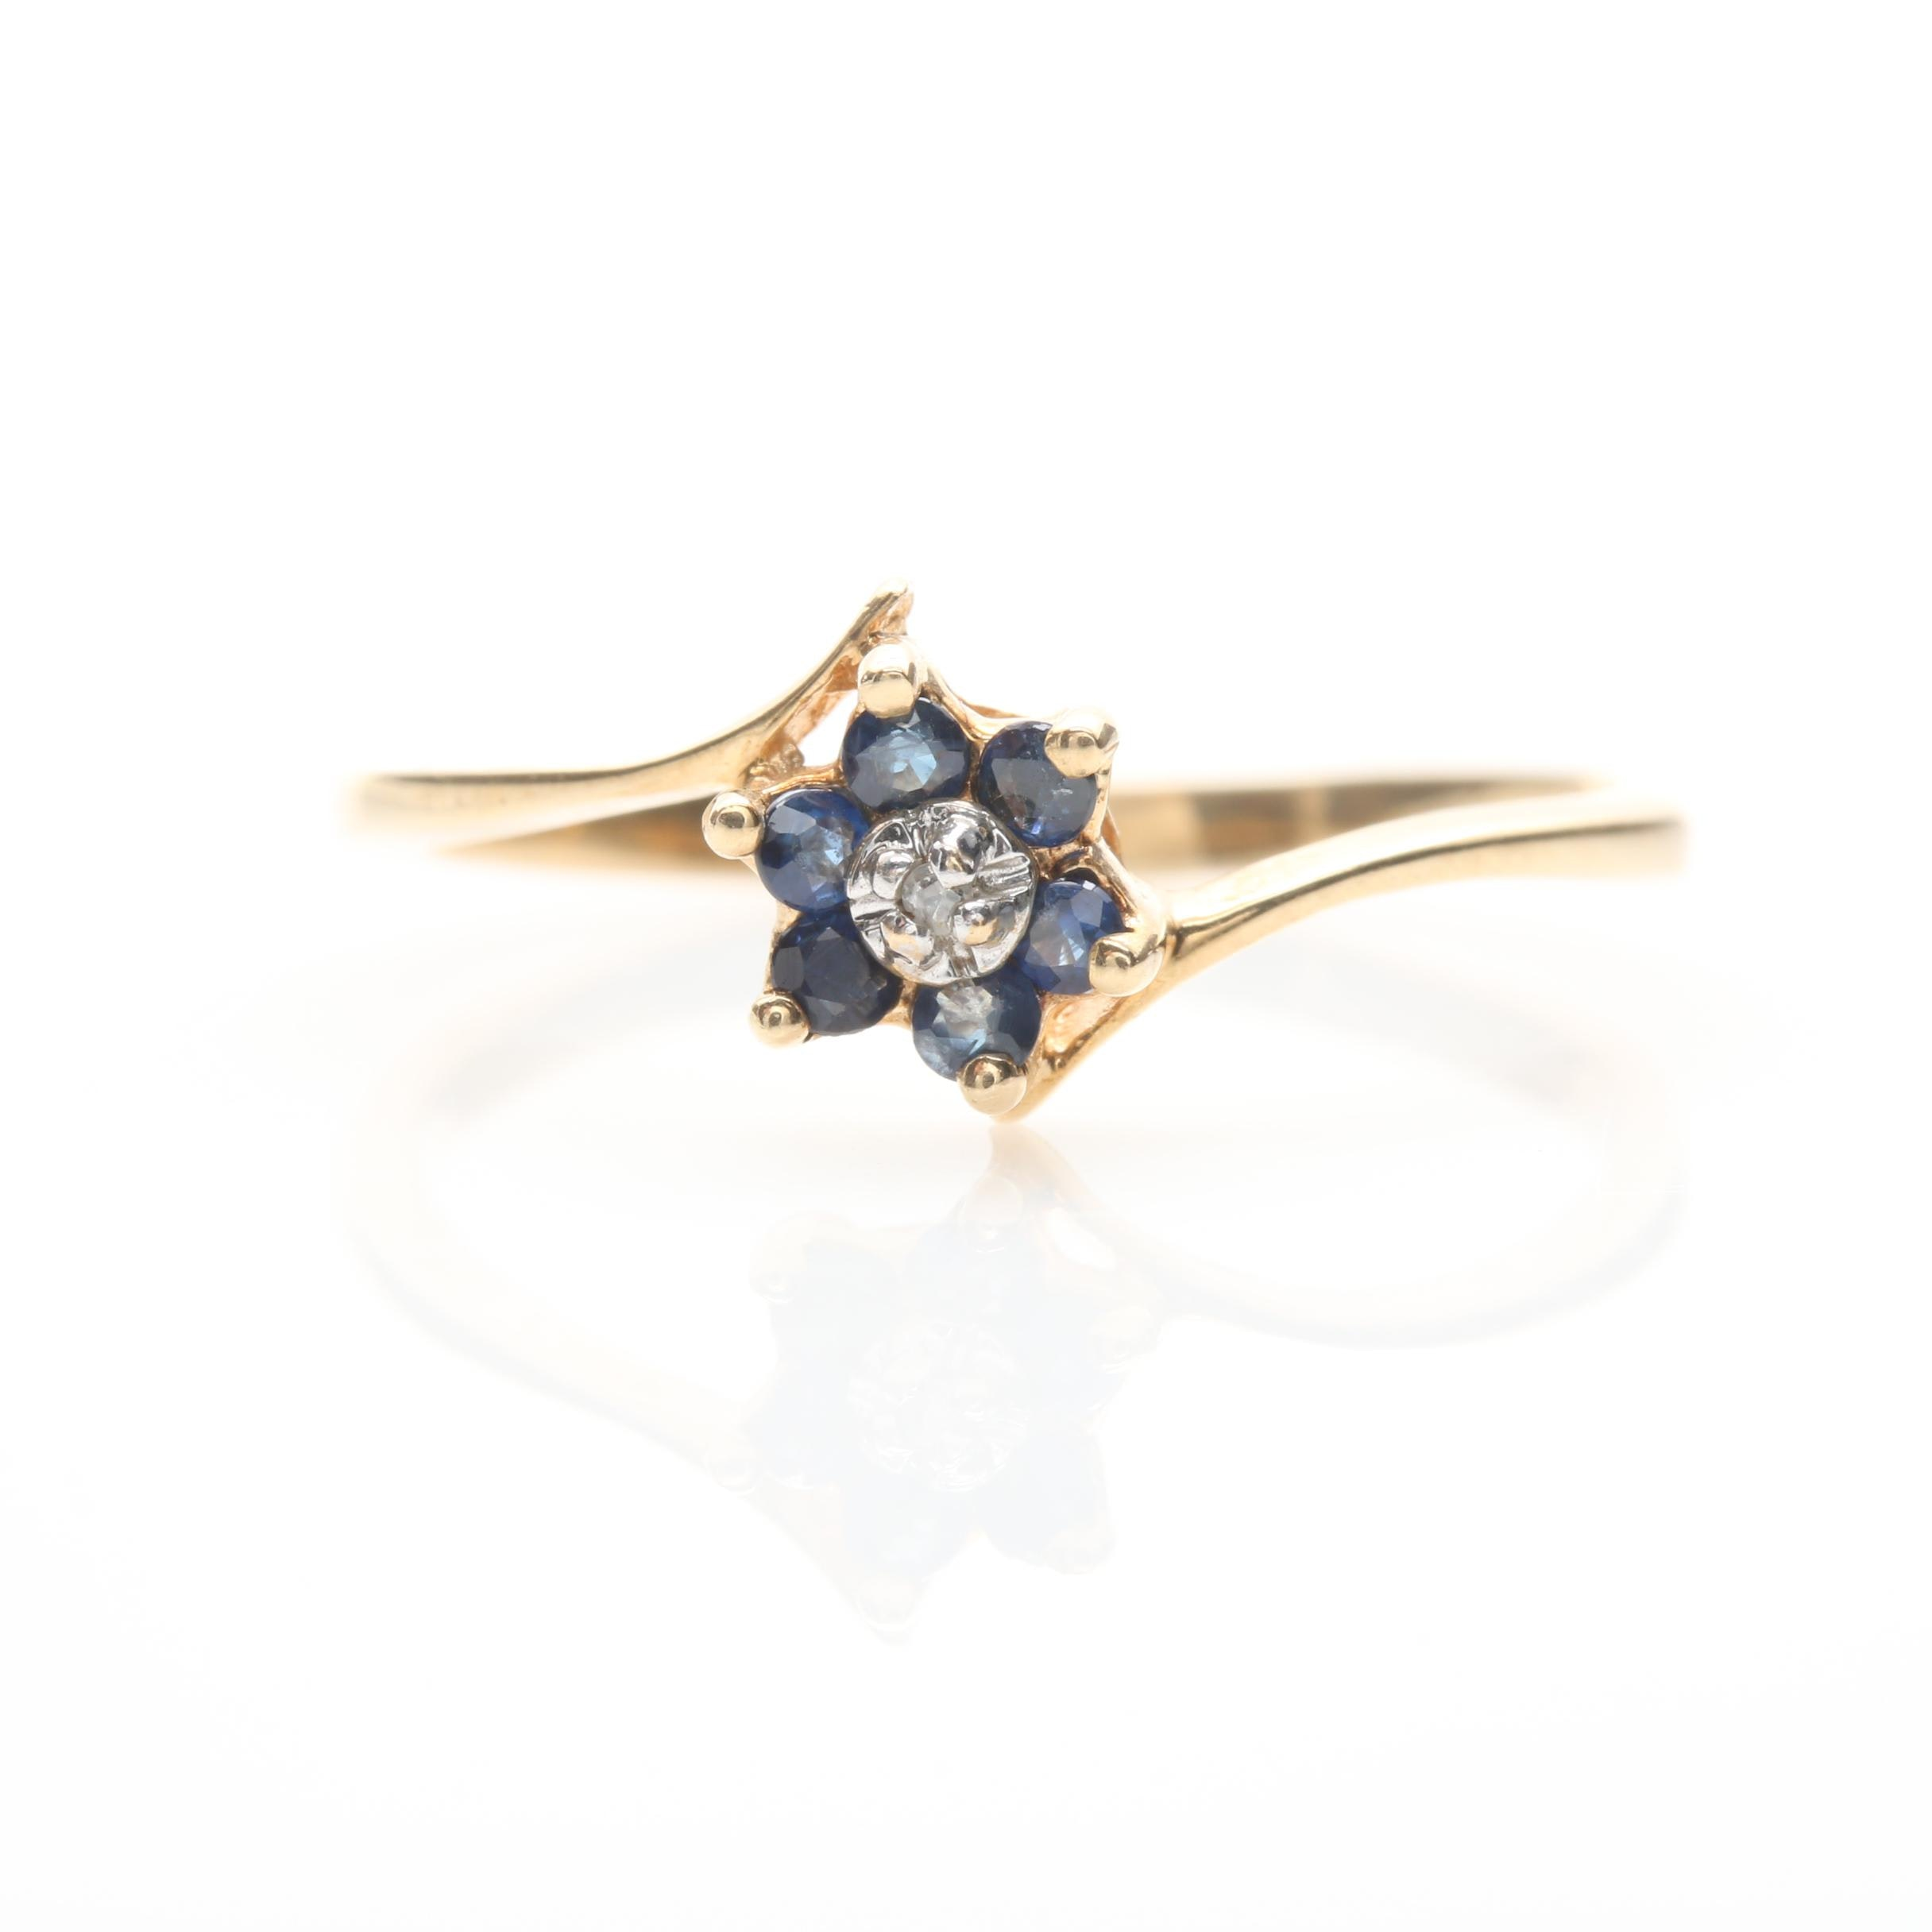 10K Yellow Gold Diamond and Sapphire Ring